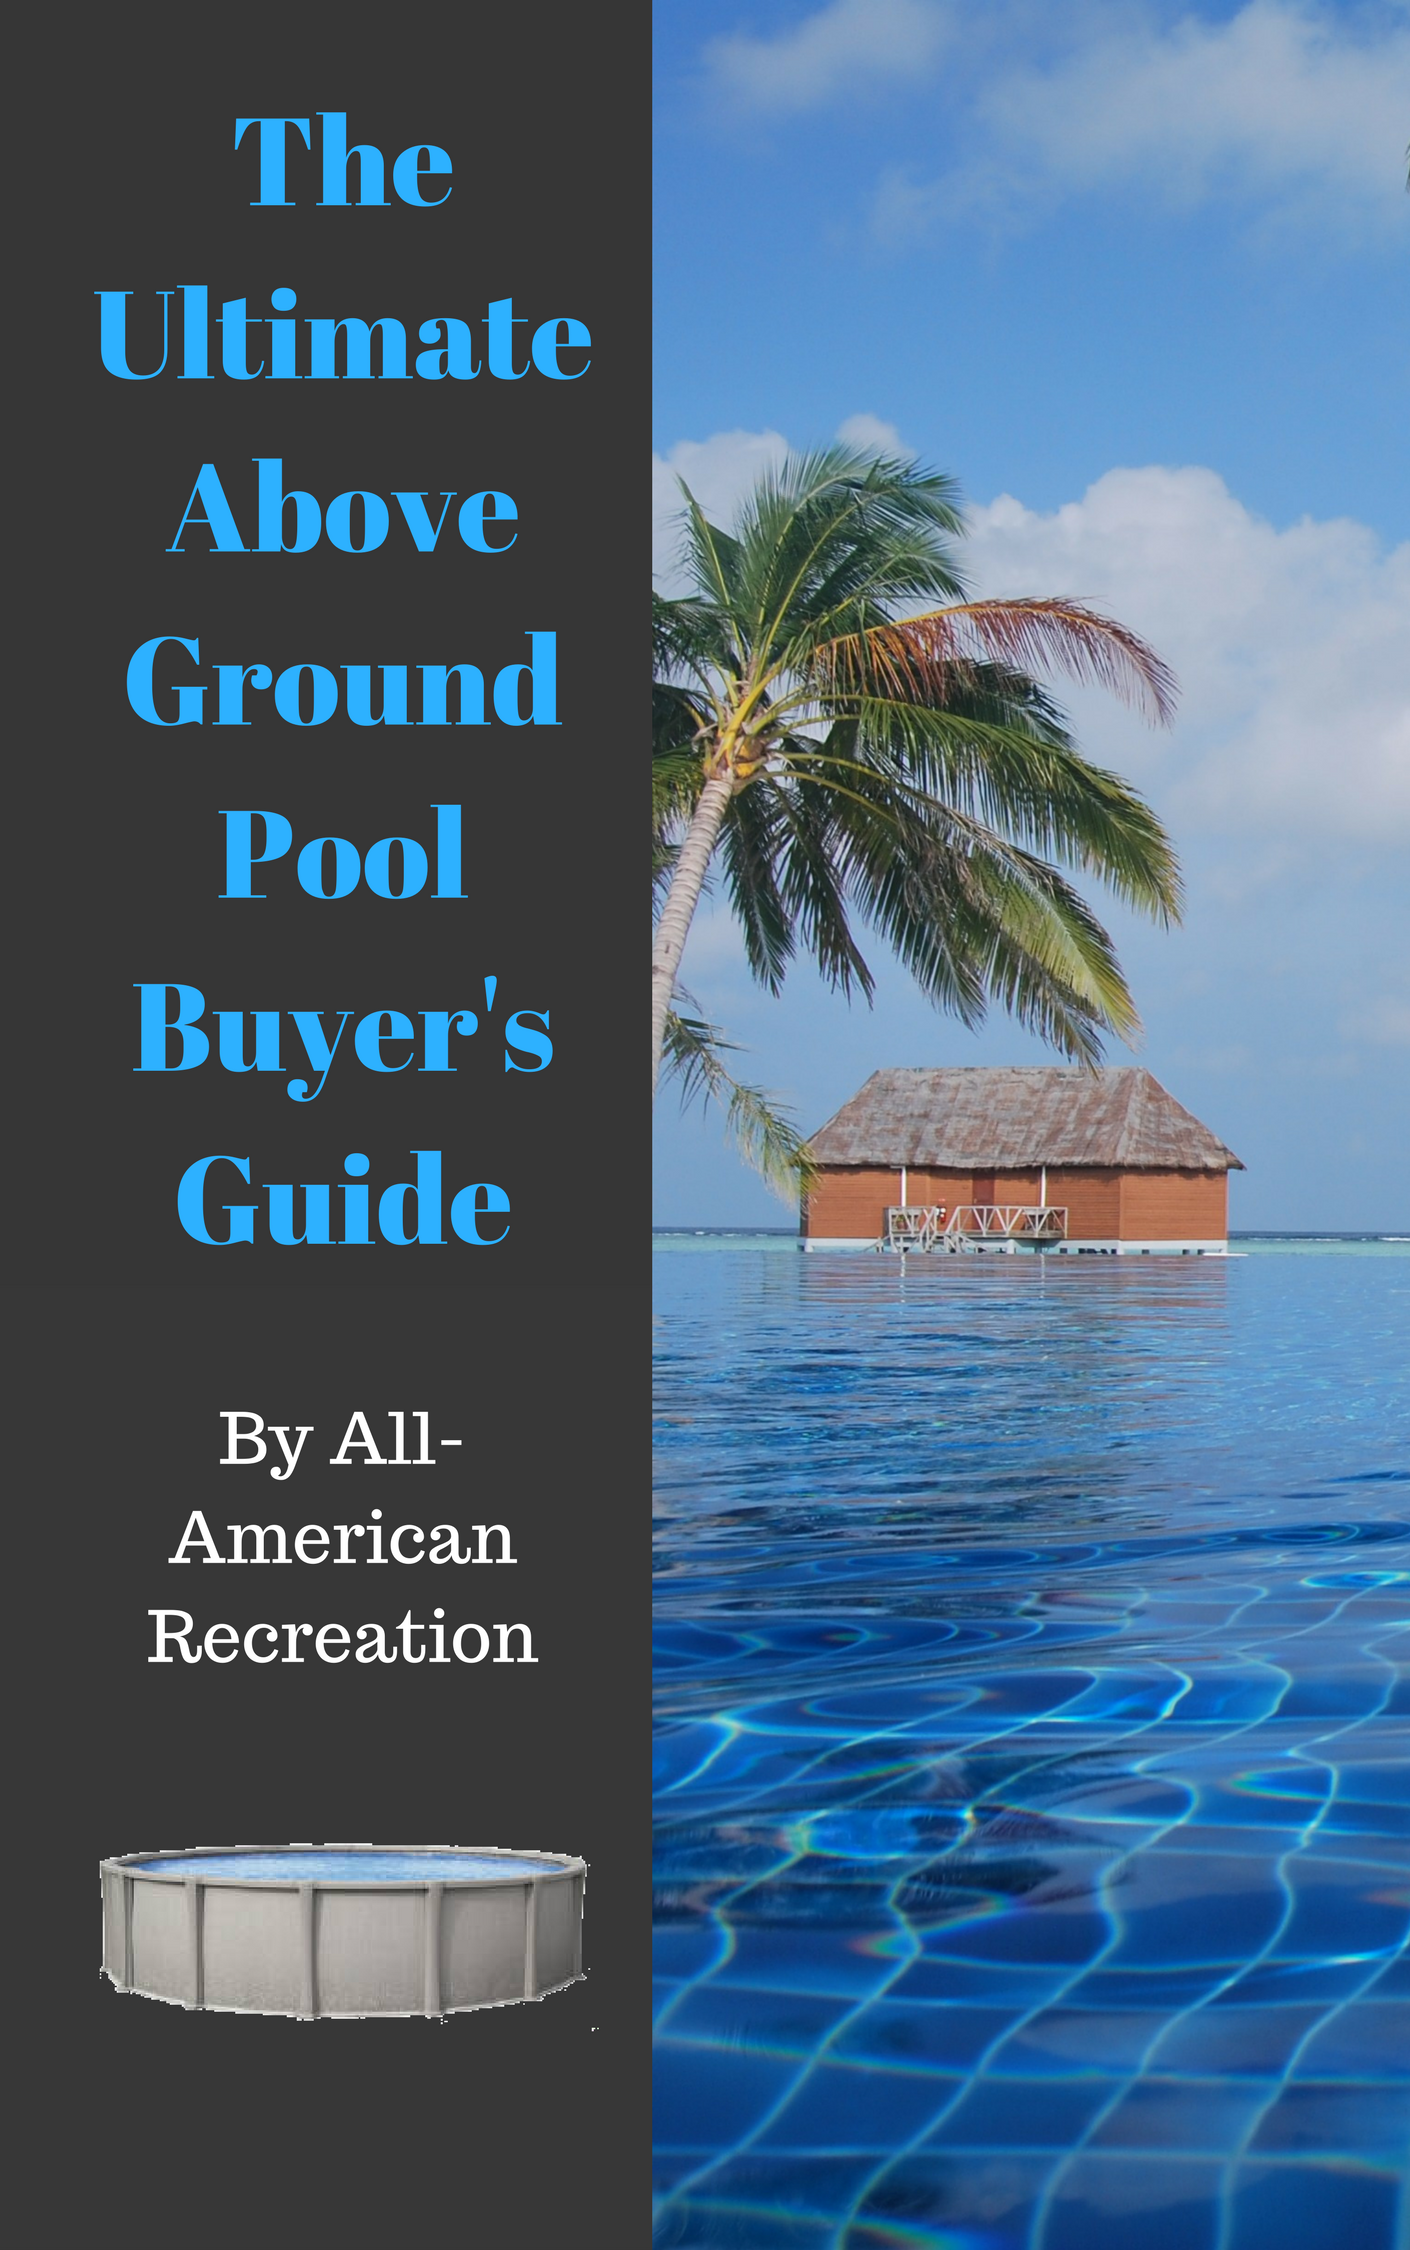 Above Ground Pool Buyer's Guide by All-American Recreation cover